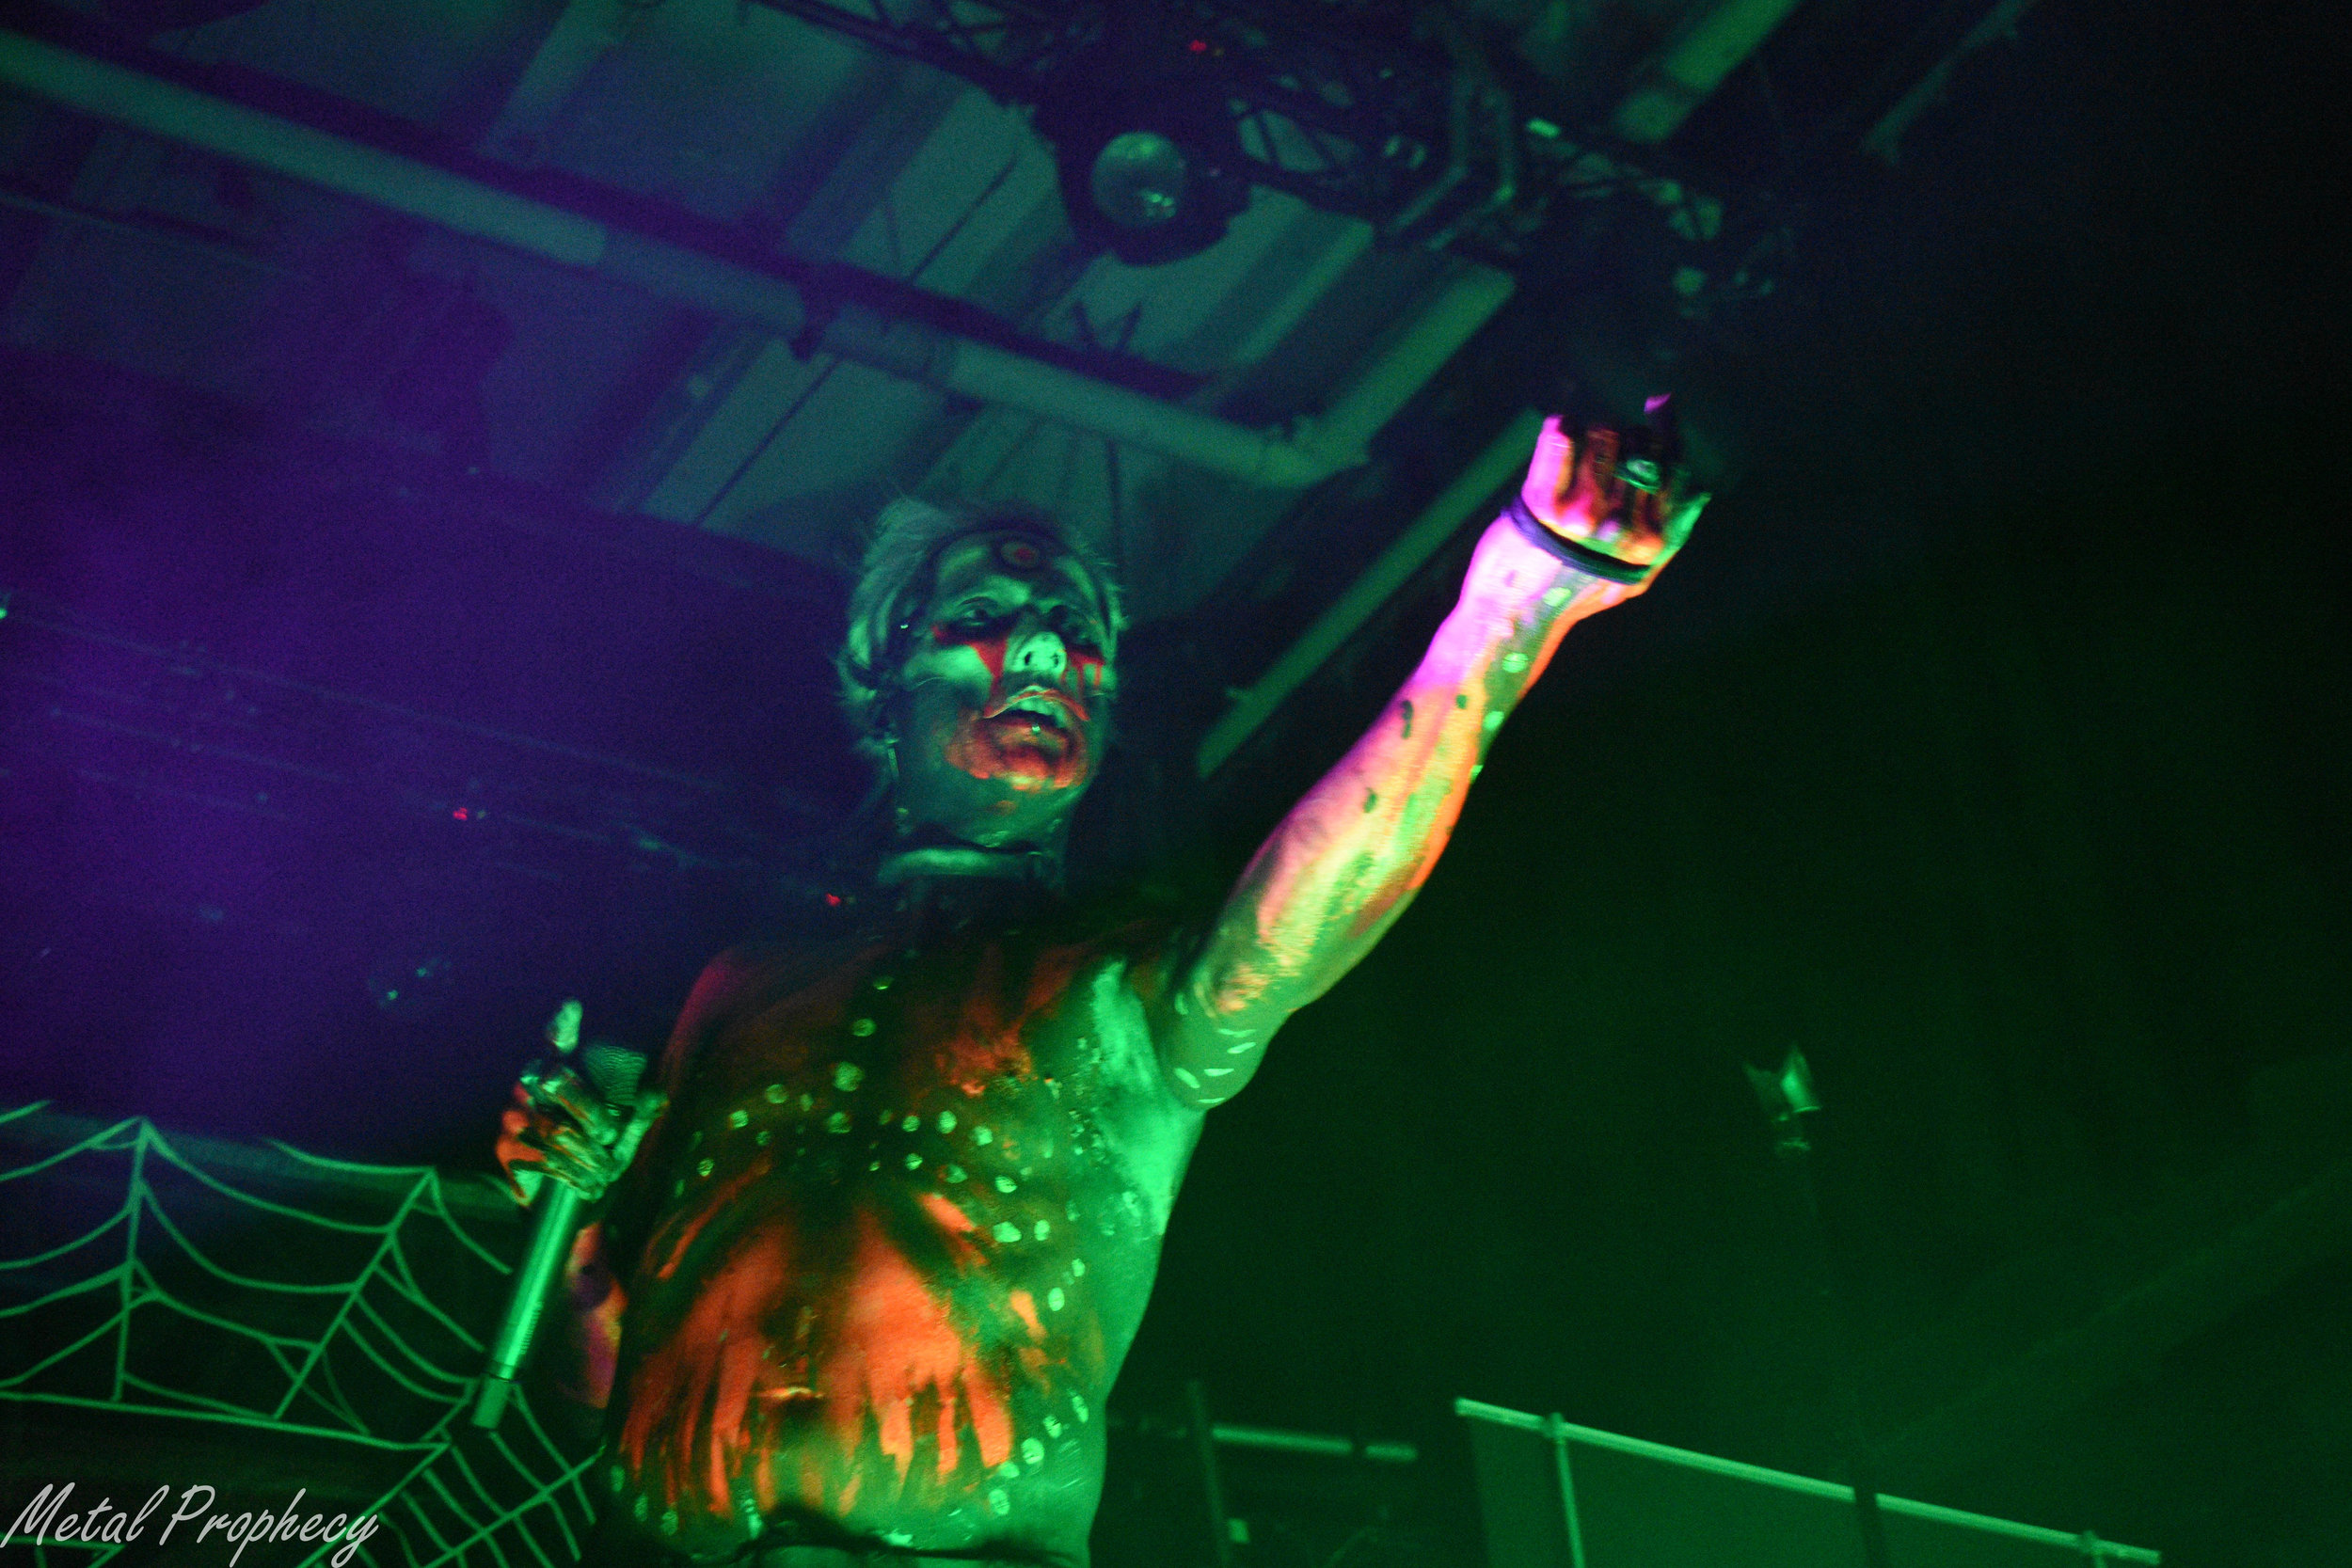 Wednesday 13 at The Masquerade